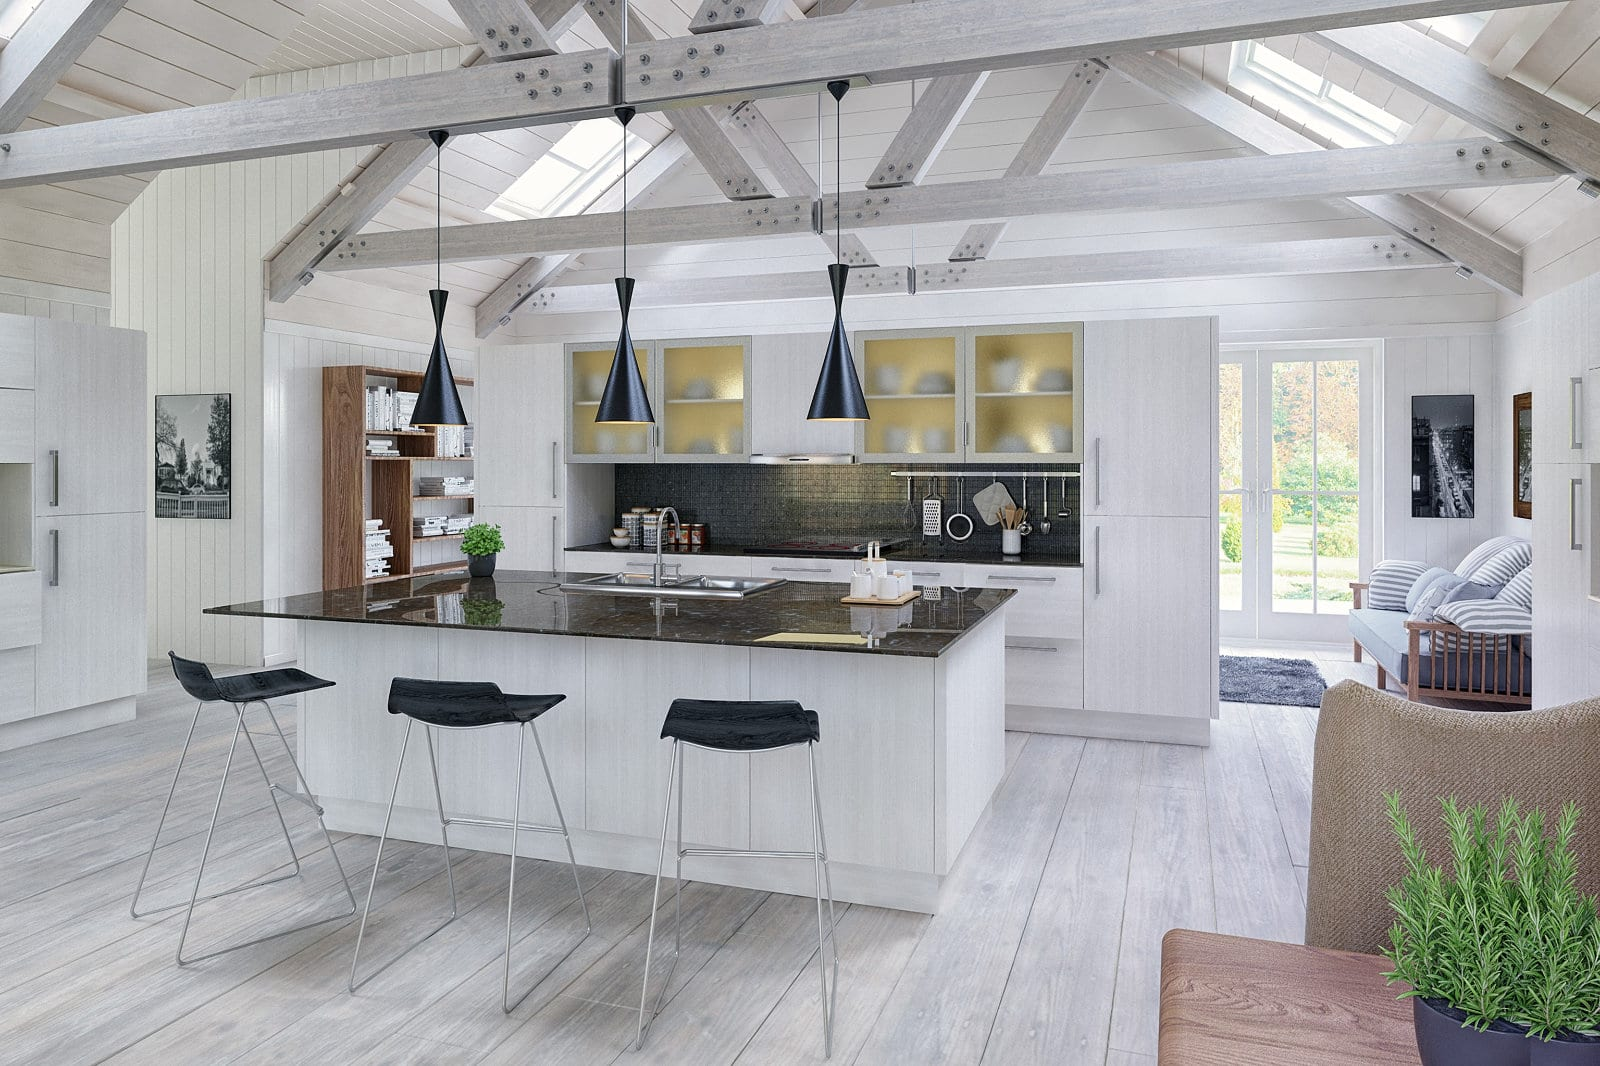 Blossom Avenue Opengrain White Venice Open Plan Kitchen With Island | Right Choice Kitchens, South Wales